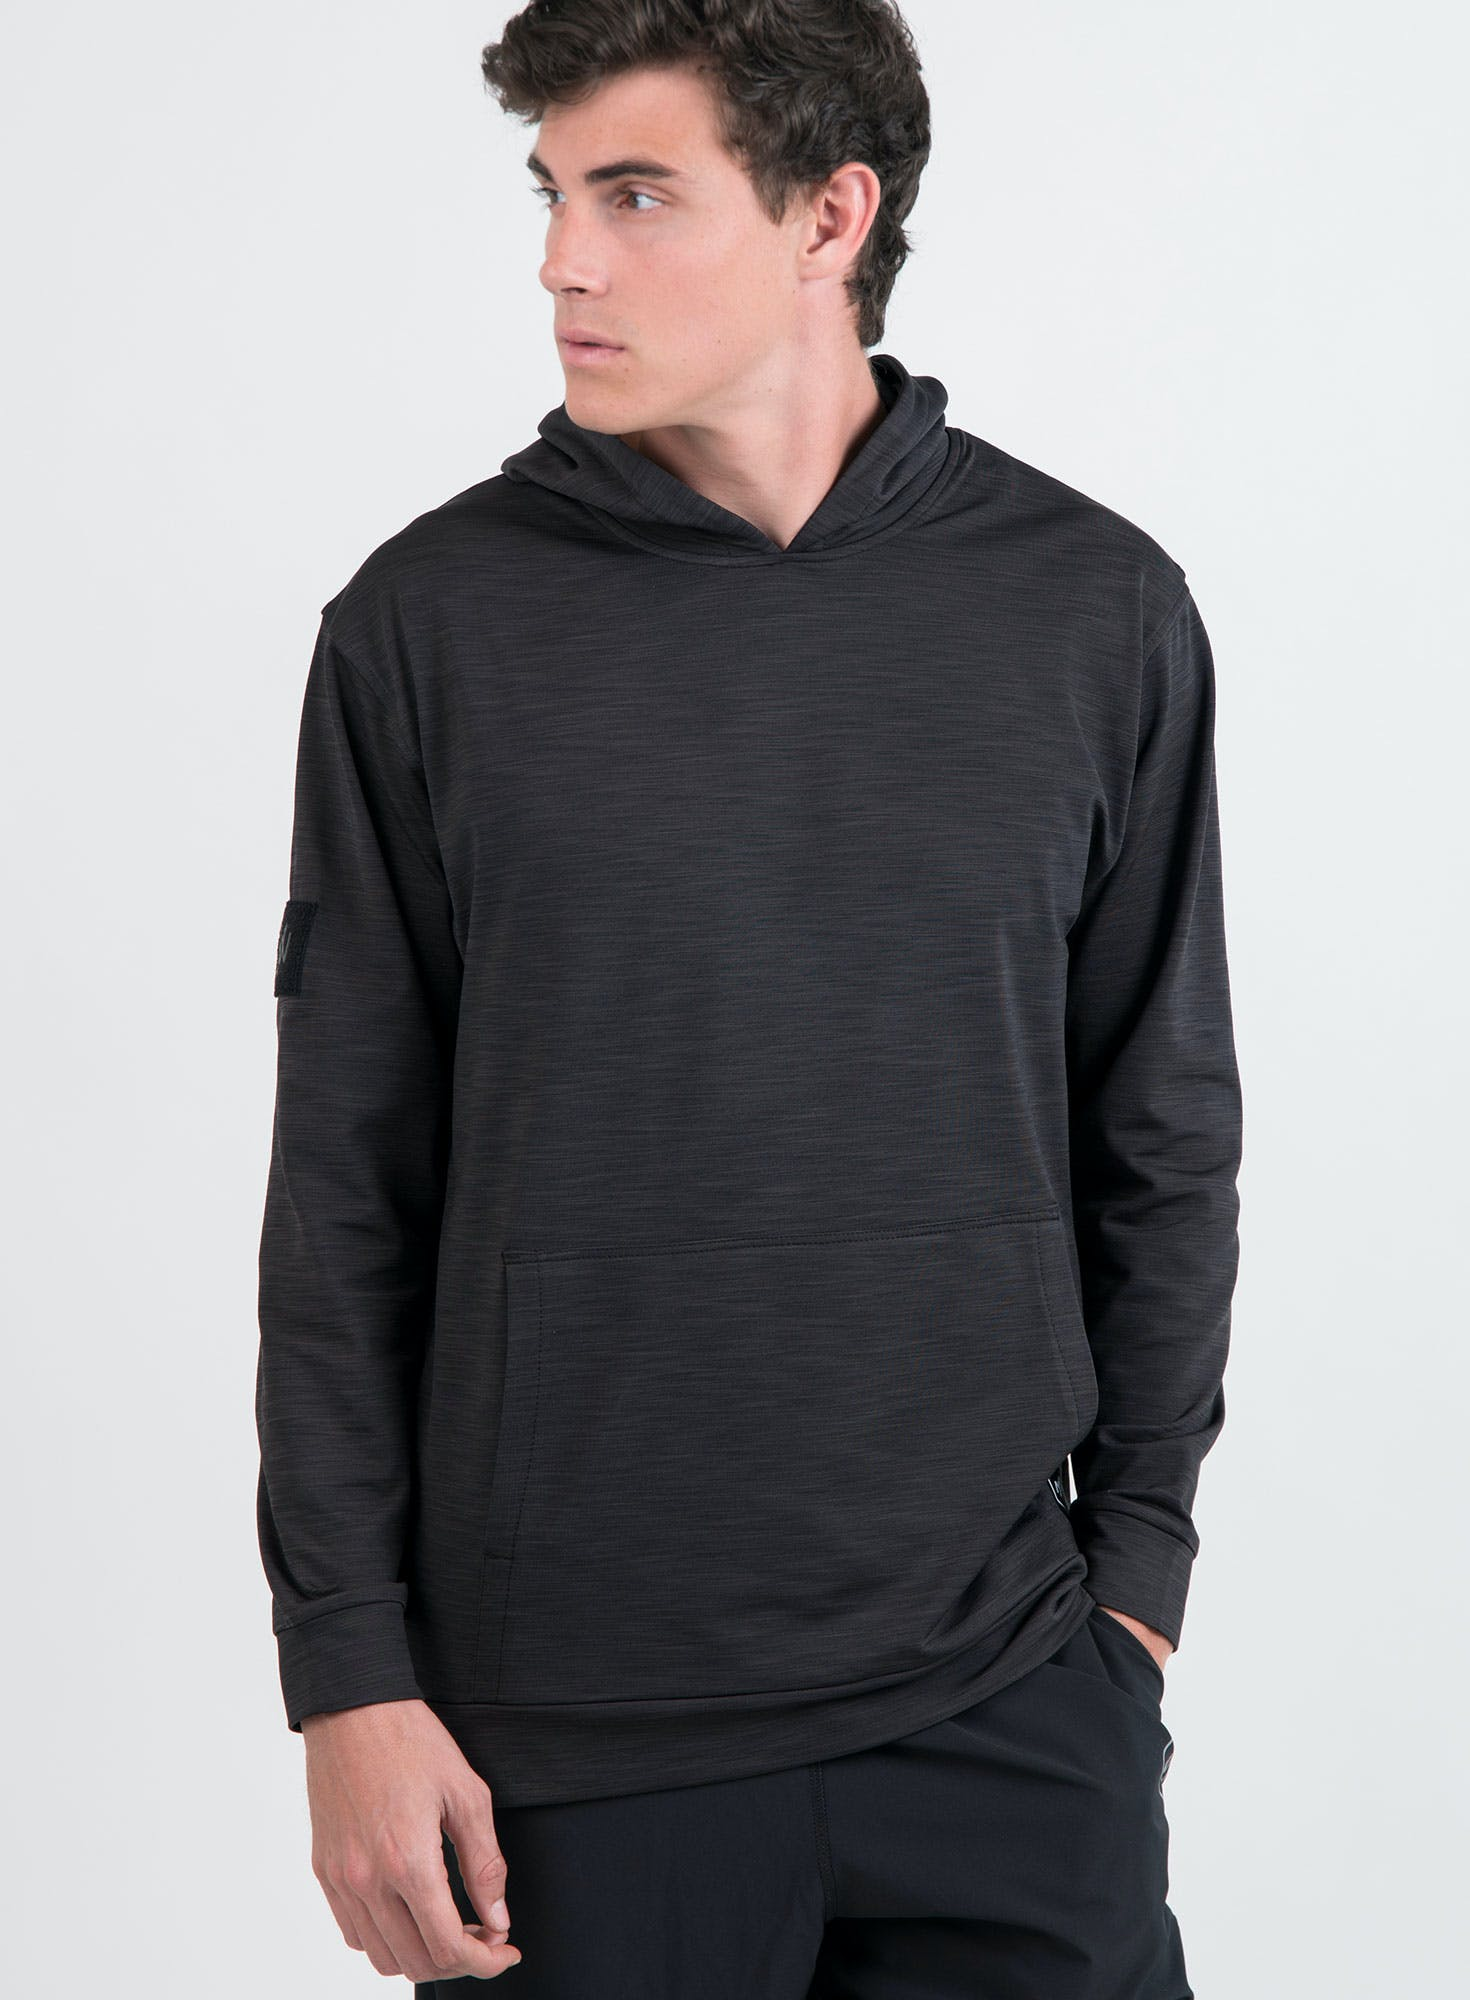 Training Tech Fleece Pullover Bonus Image